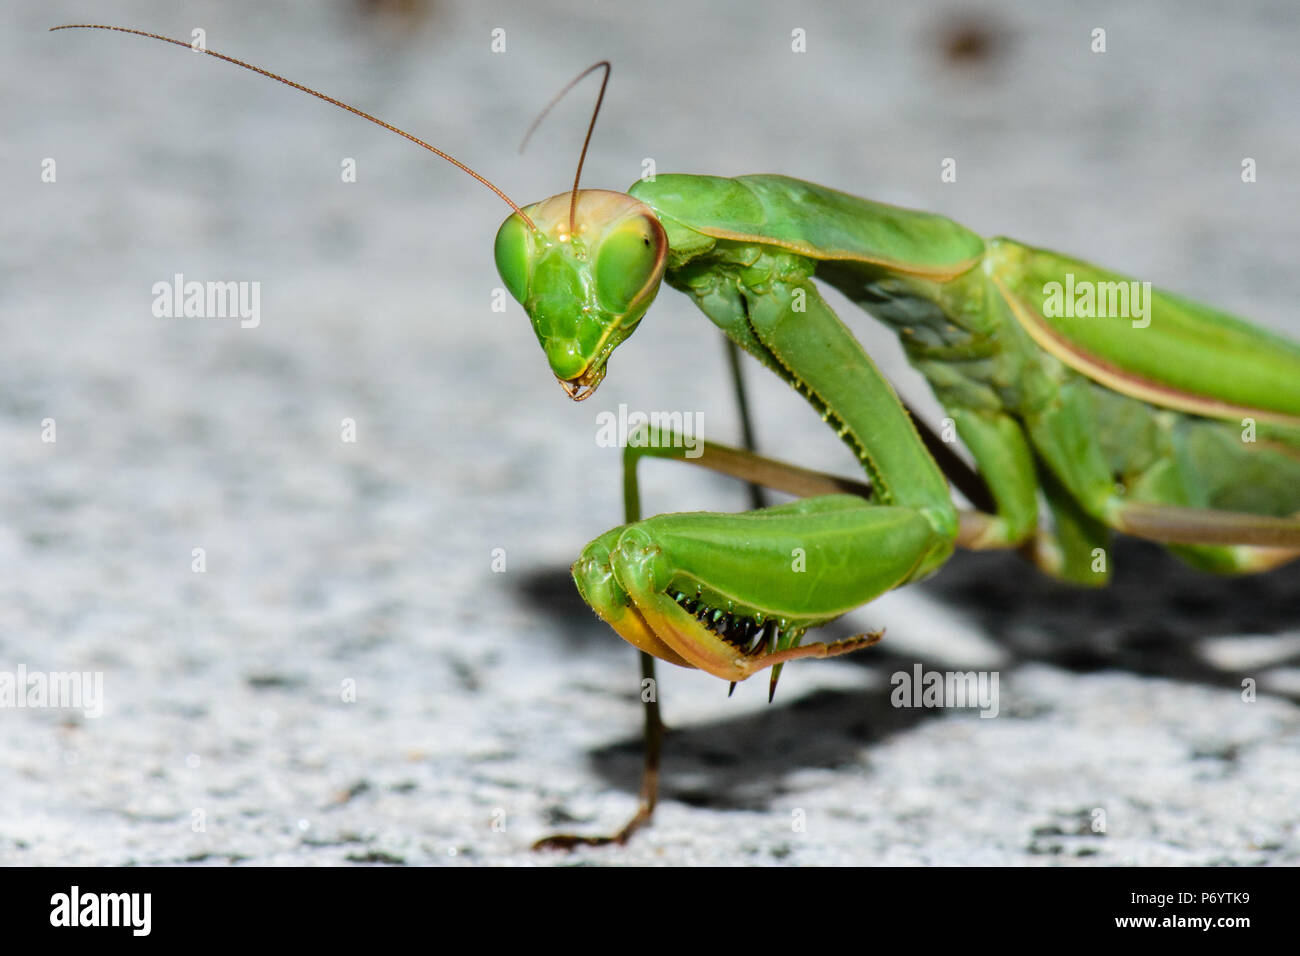 Color outdoor natural wildlife close up macro photography of a single isolated green praying mantis on a stony background - Stock Image